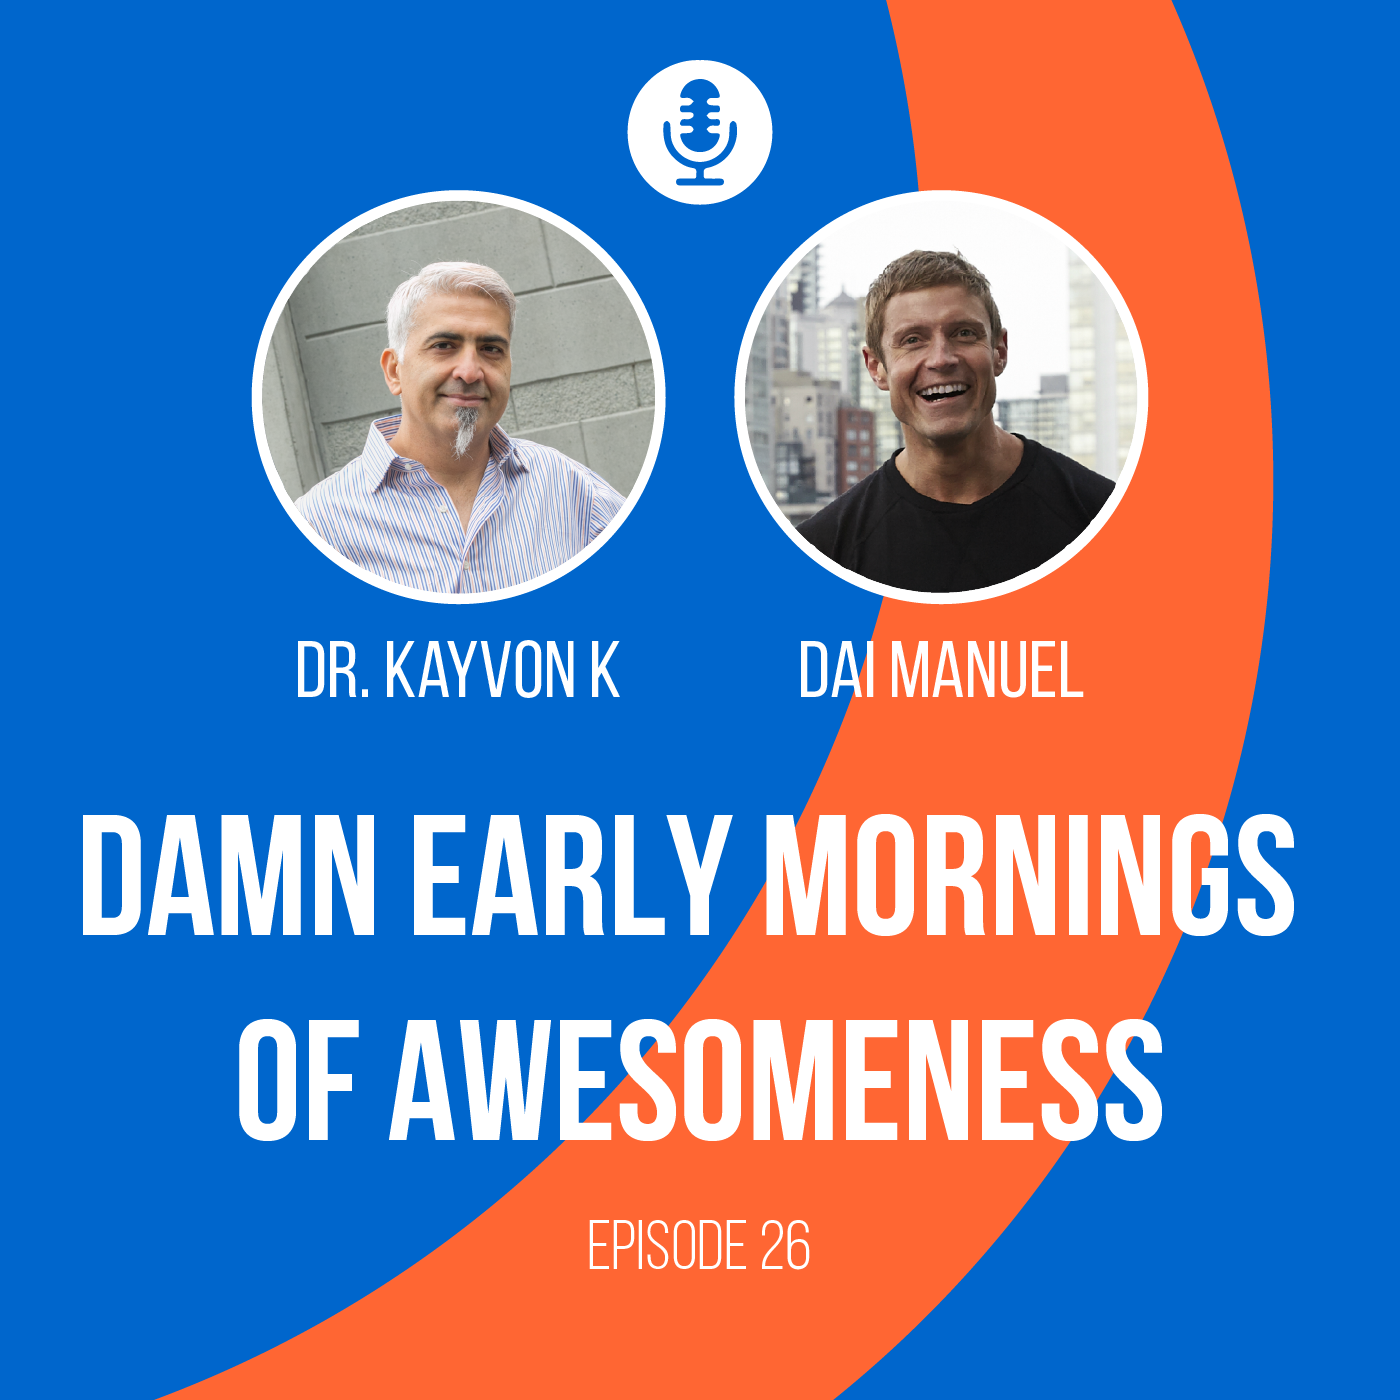 Episode 26 - Damn Early Mornings of Awesomeness